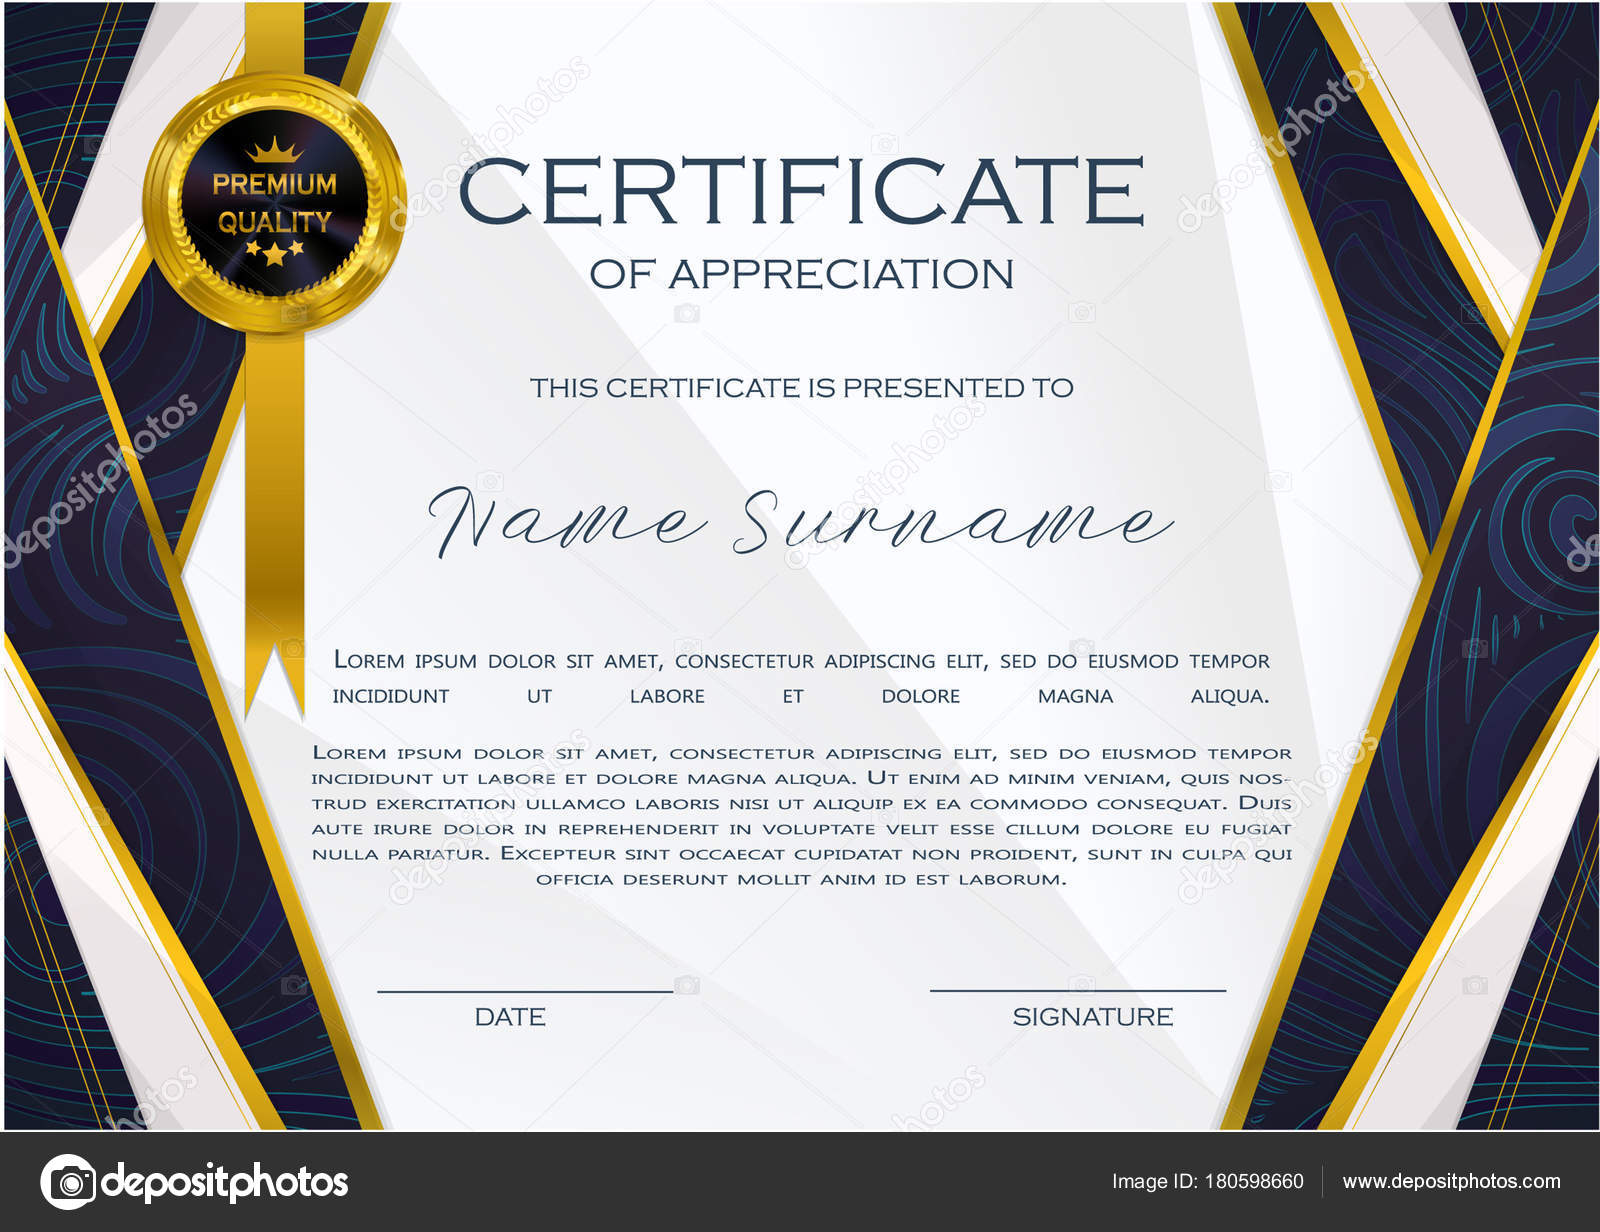 Qualification certificate appreciation design elegant luxury modern qualification certificate of appreciation design elegant luxury and modern pattern best quality award template with blue and golden tapes shapes badge yadclub Images